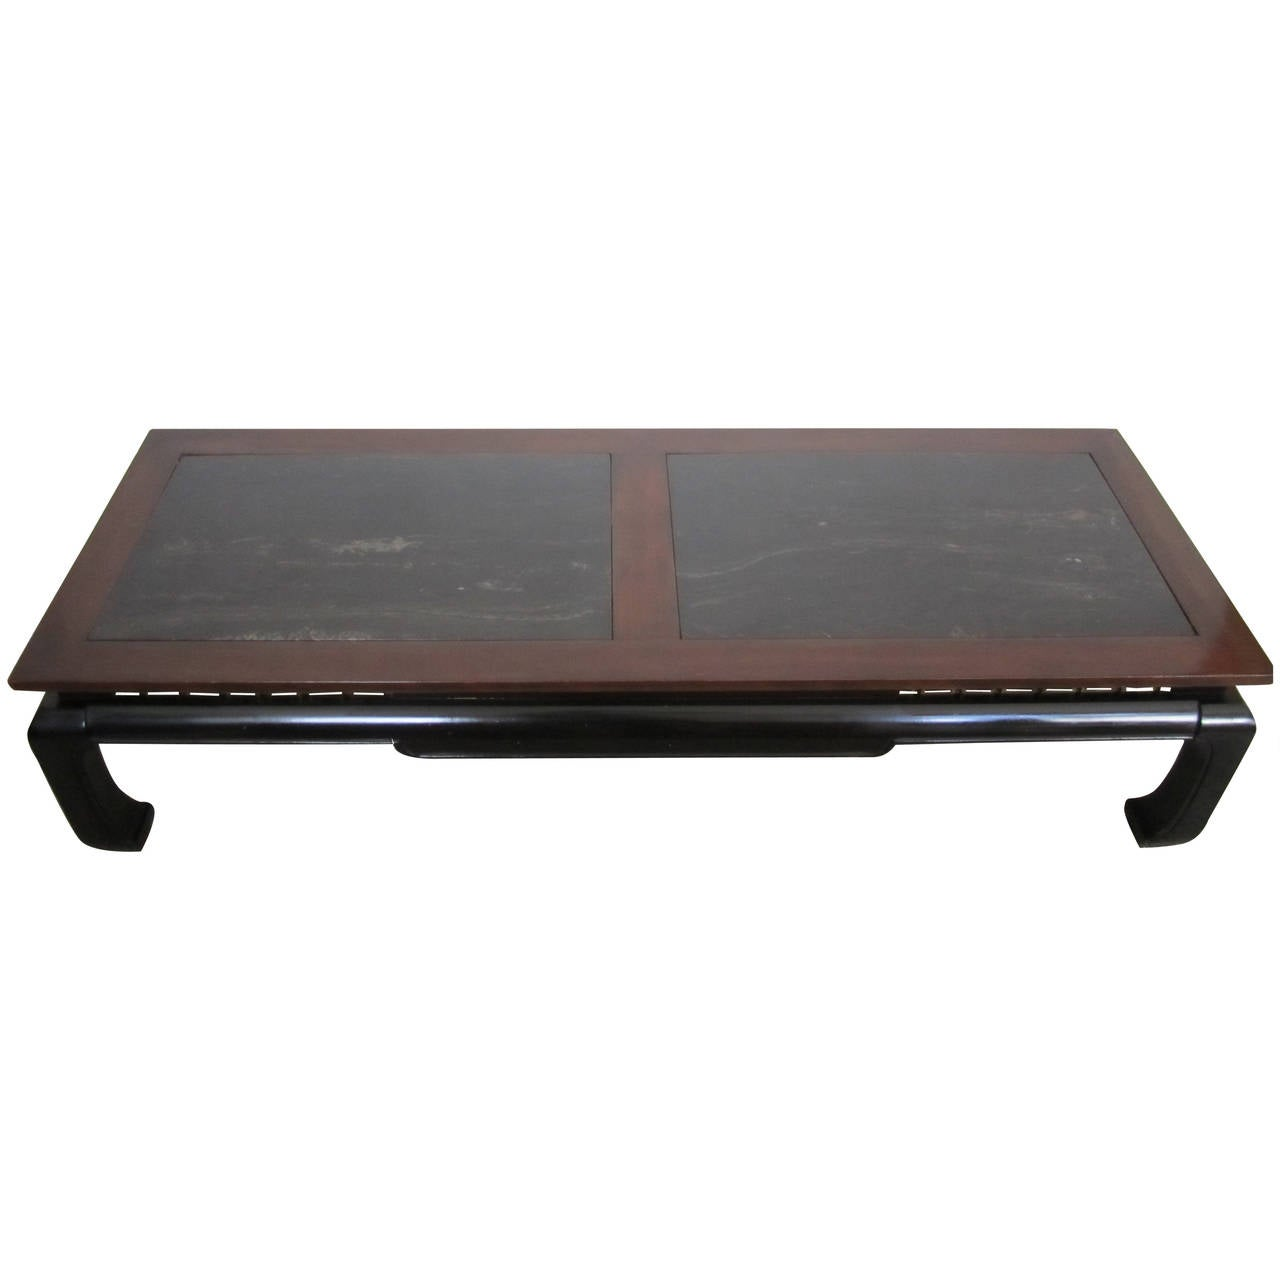 Vintage Modern Chinoiserie Coffee Table In Black Lacquer And Black Marble For Sale At 1stdibs